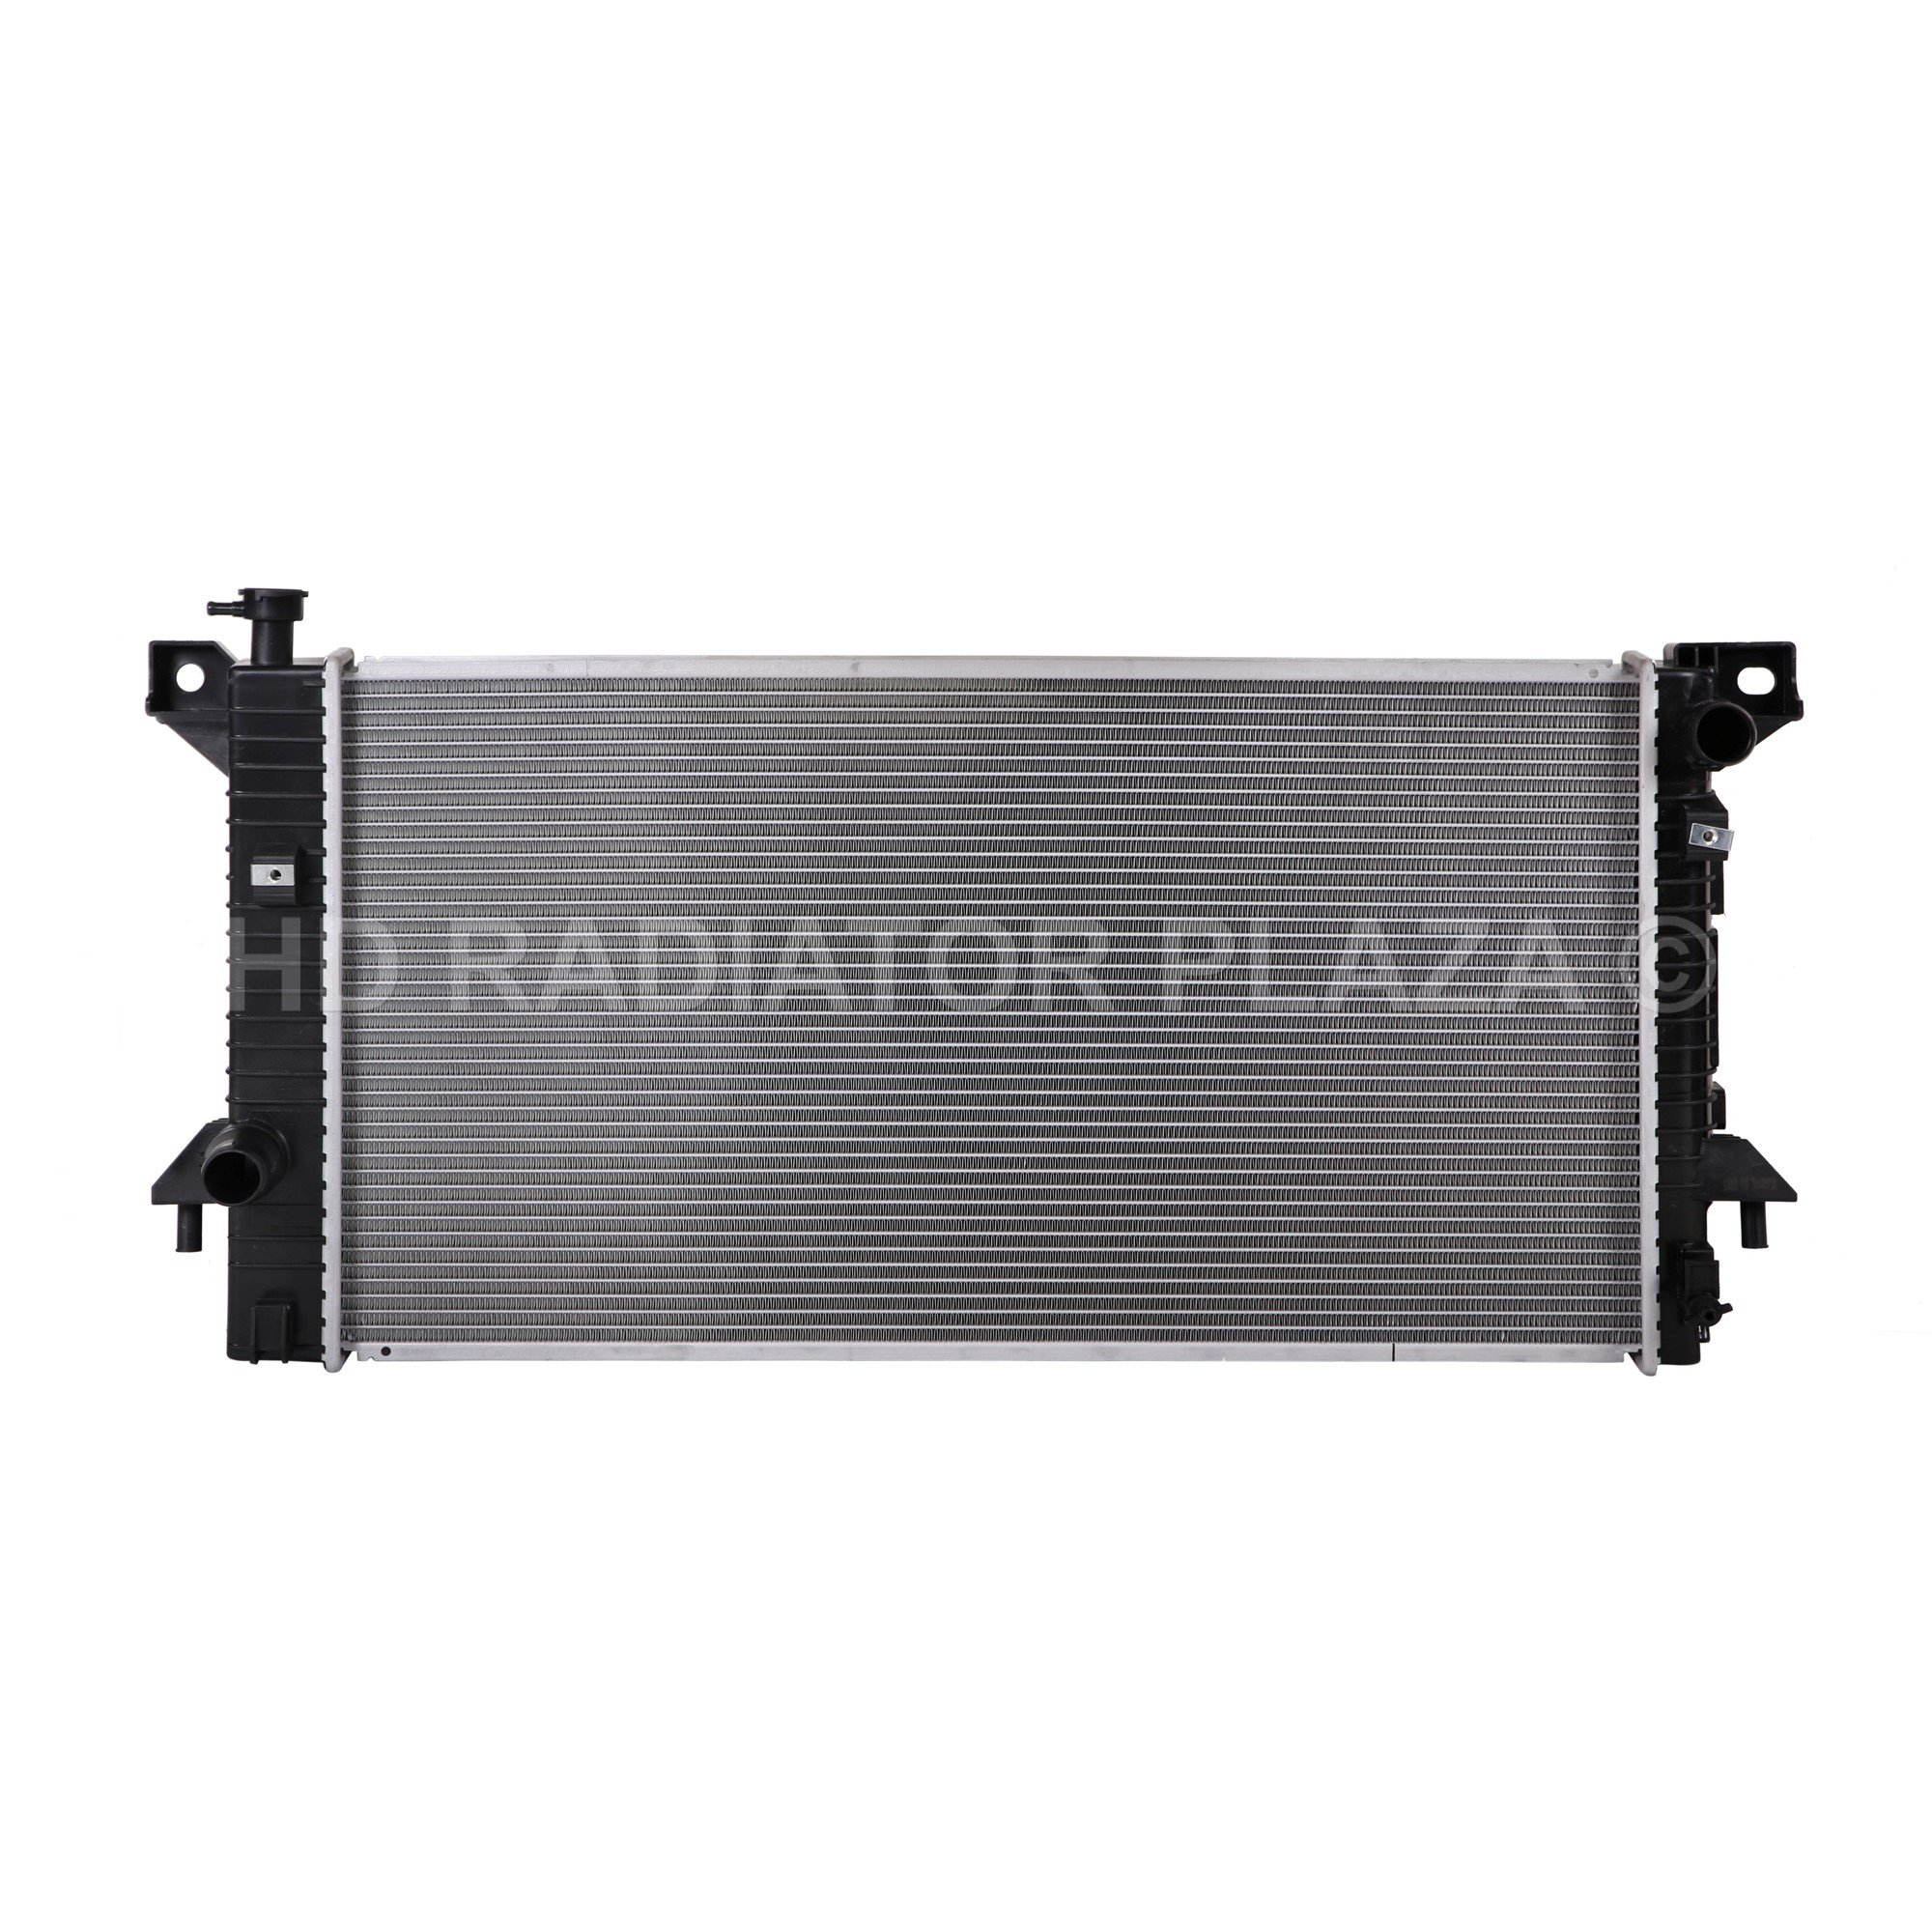 Radiator for 09-14 Ford Expedition/F-150, Lincoln Navigator